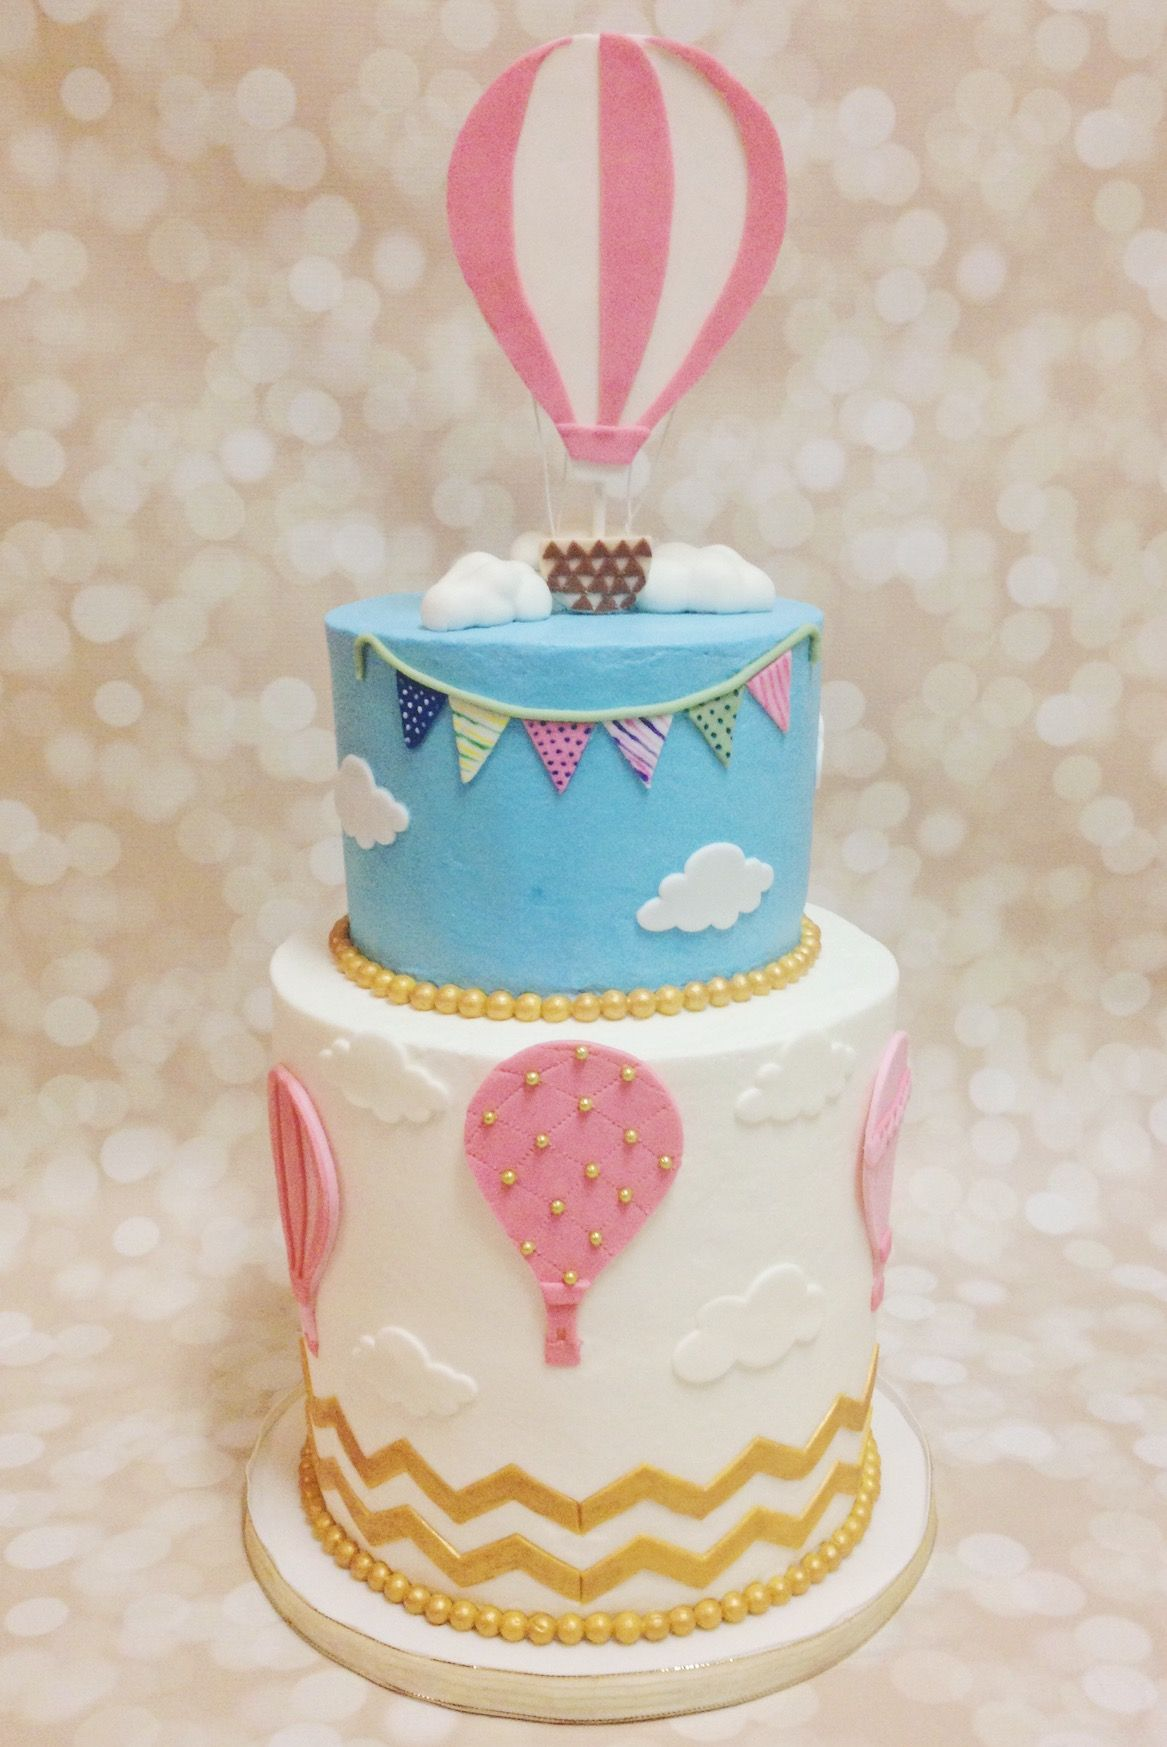 Custom Hot Air Balloon Birthday Cake By A Little Slice Of Heaven Bakery In Atlanta GA